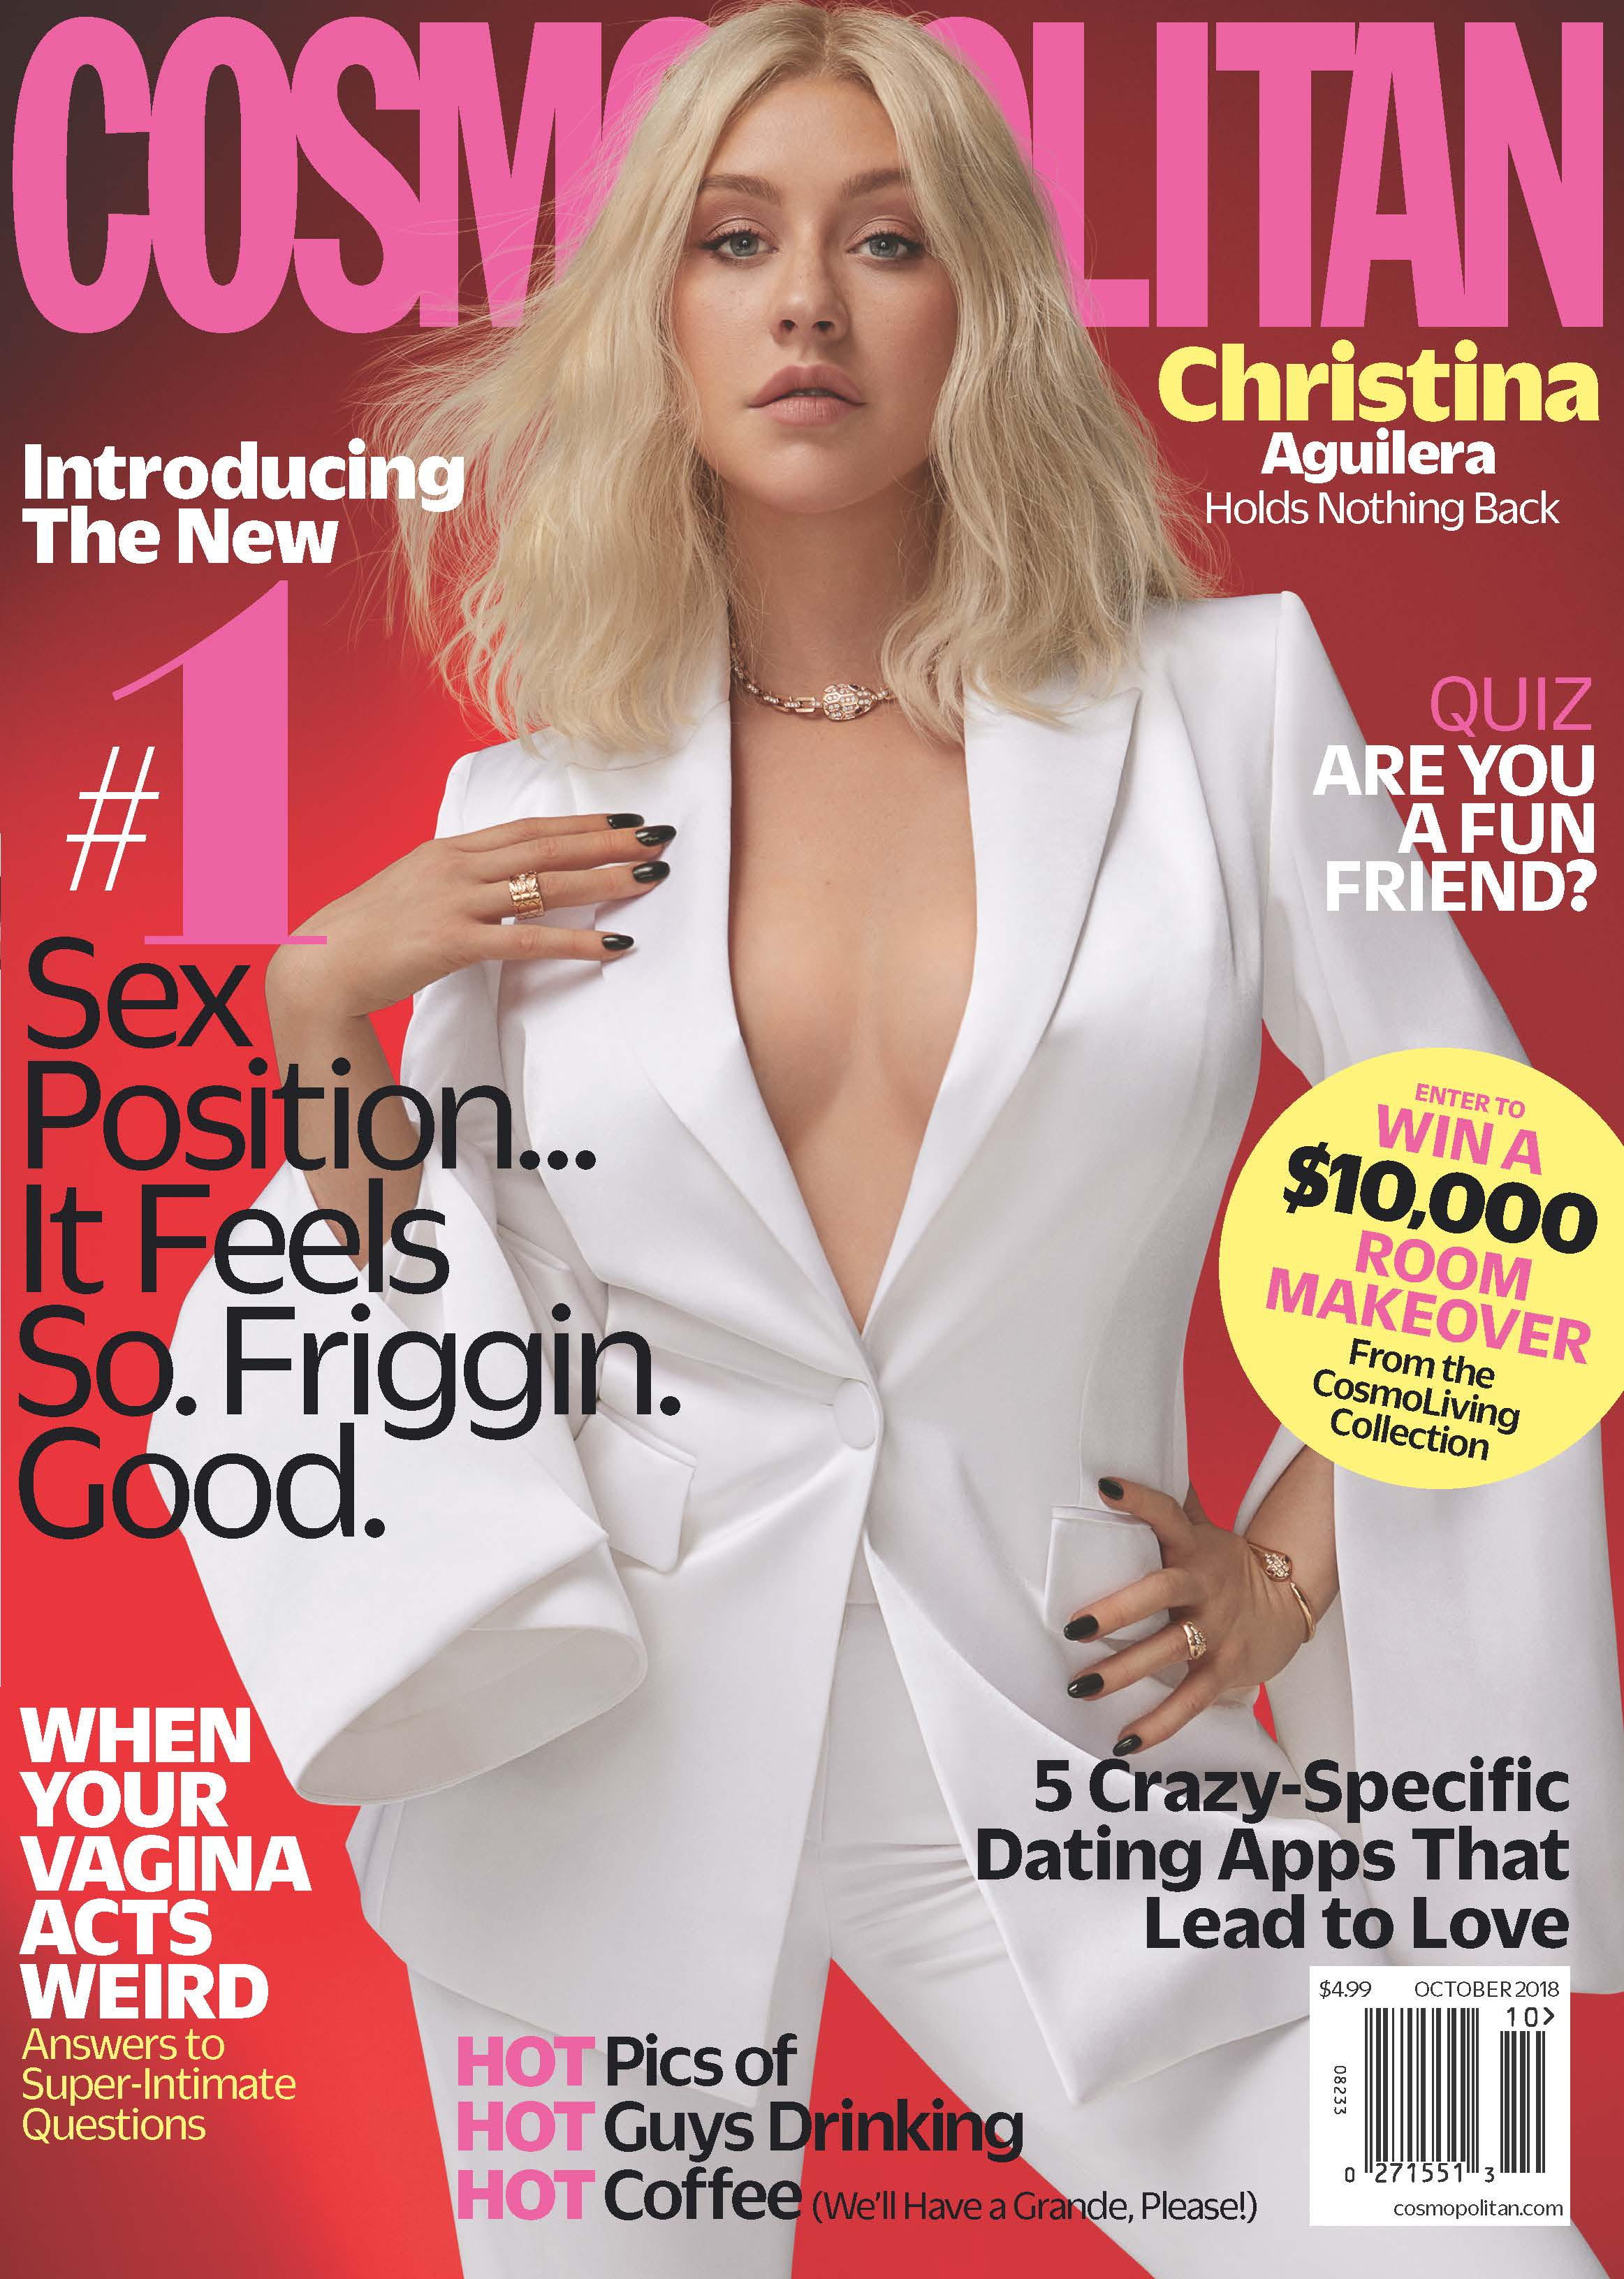 Christina Aguilera on the cover of Cosmopolitan wearing a white Yummie body suit.